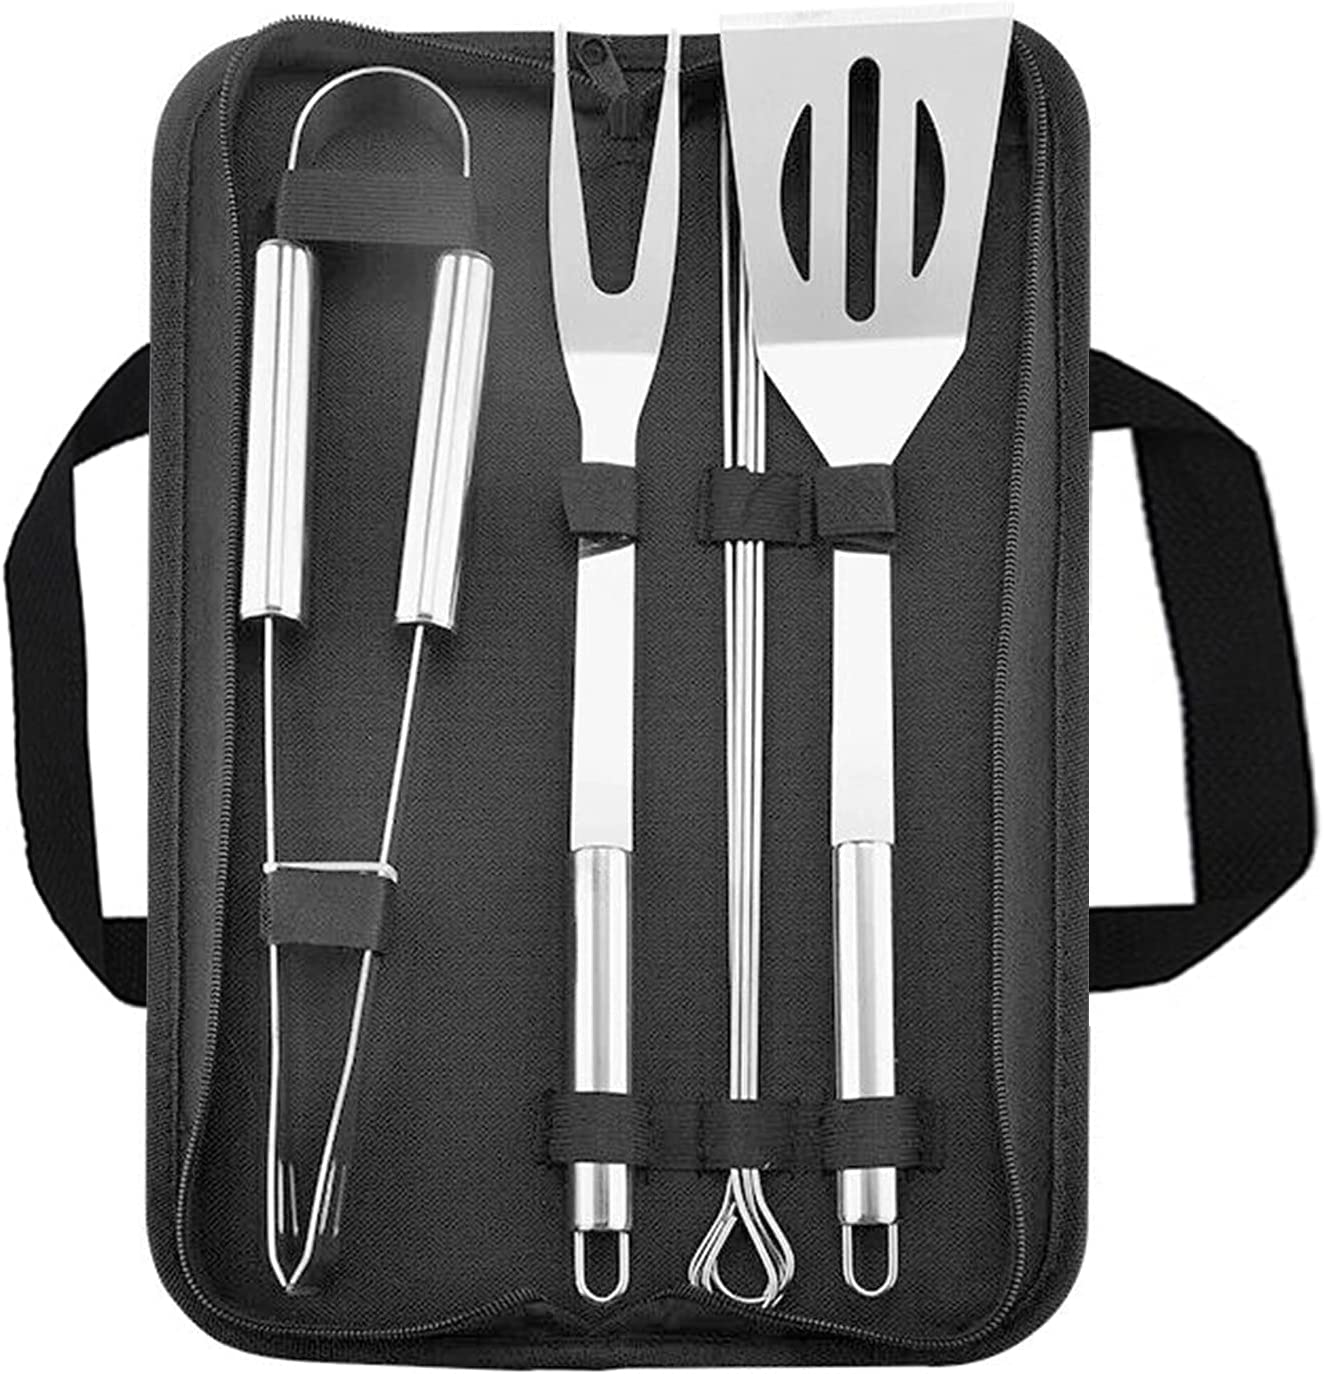 N\C BBQ Grill Cooking Utensils Steel Las Vegas Mall Stainless Tampa Mall Tool Set Barbeque